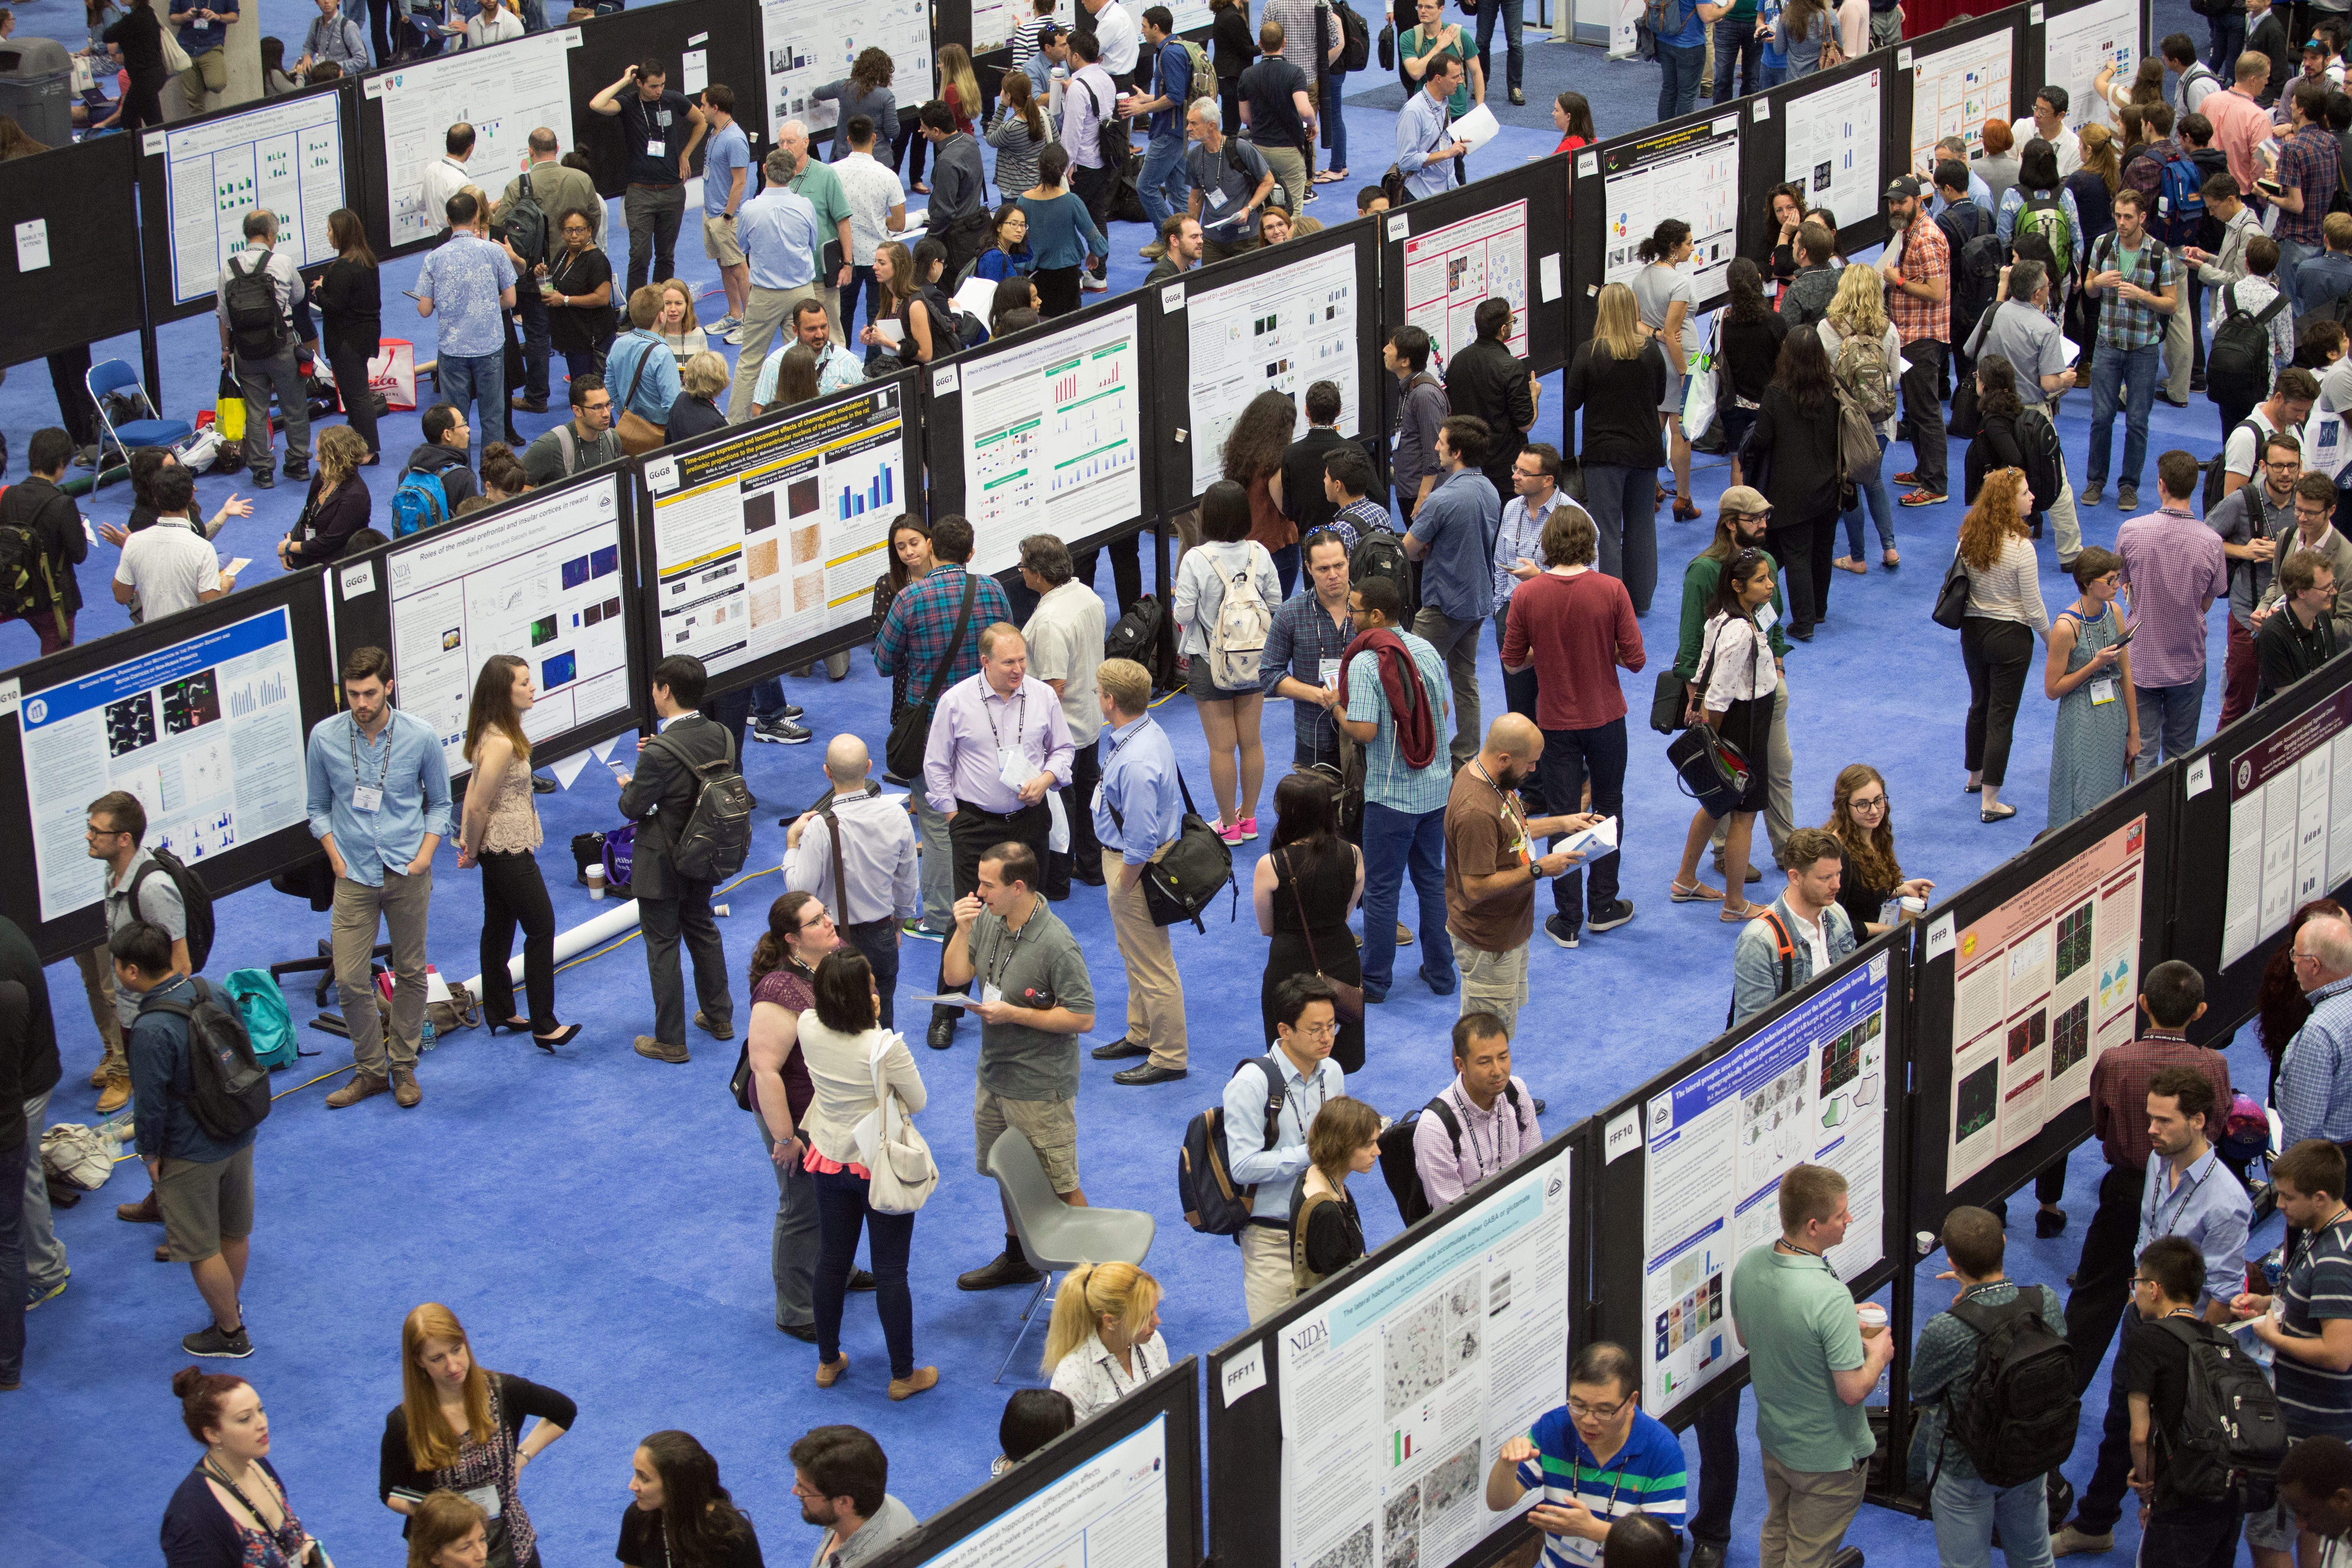 The crowded poster floor at the annual meeting